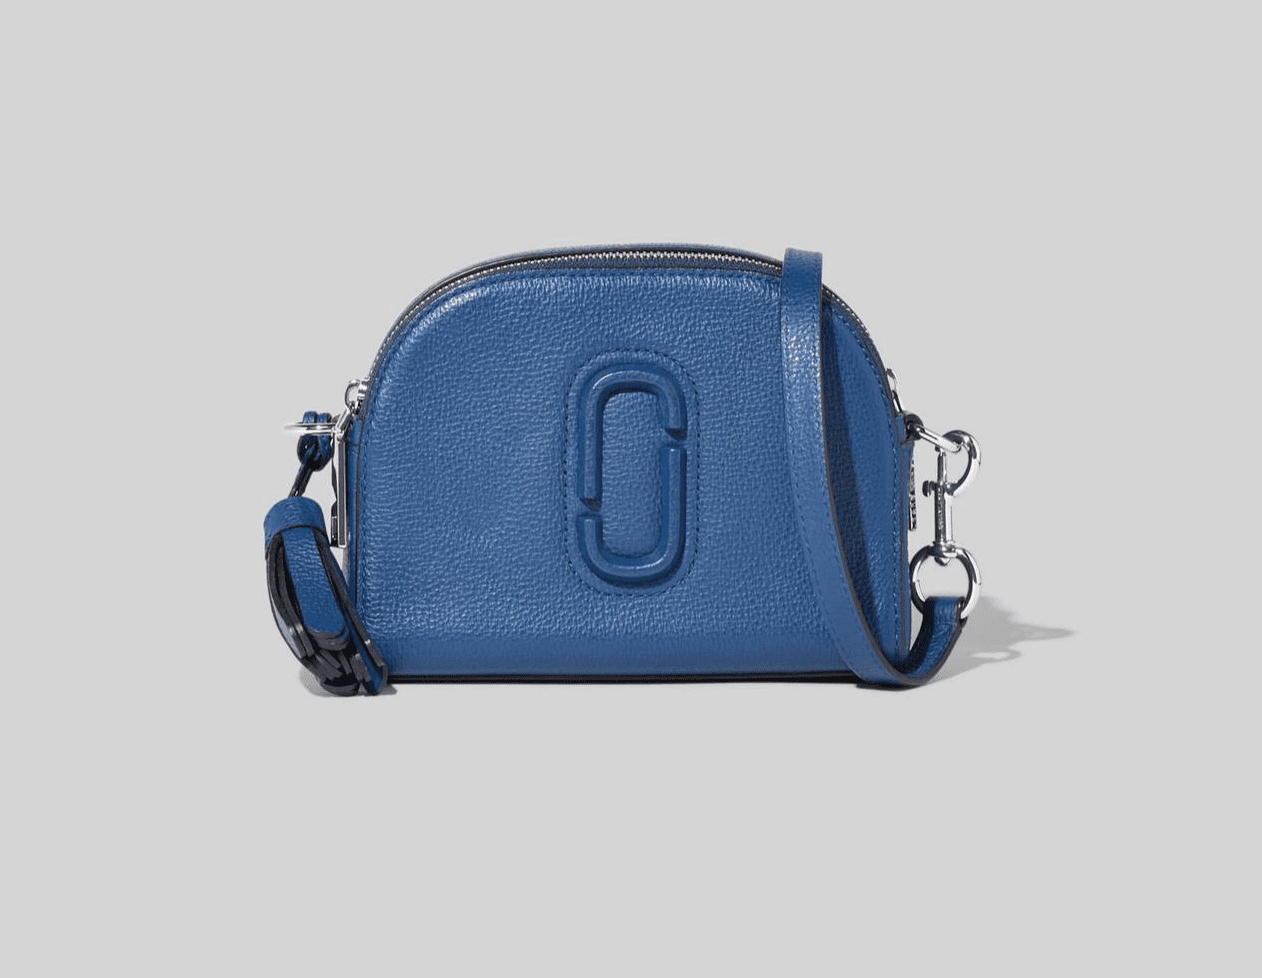 Marc Jacobs: Save 40% off for a limited time